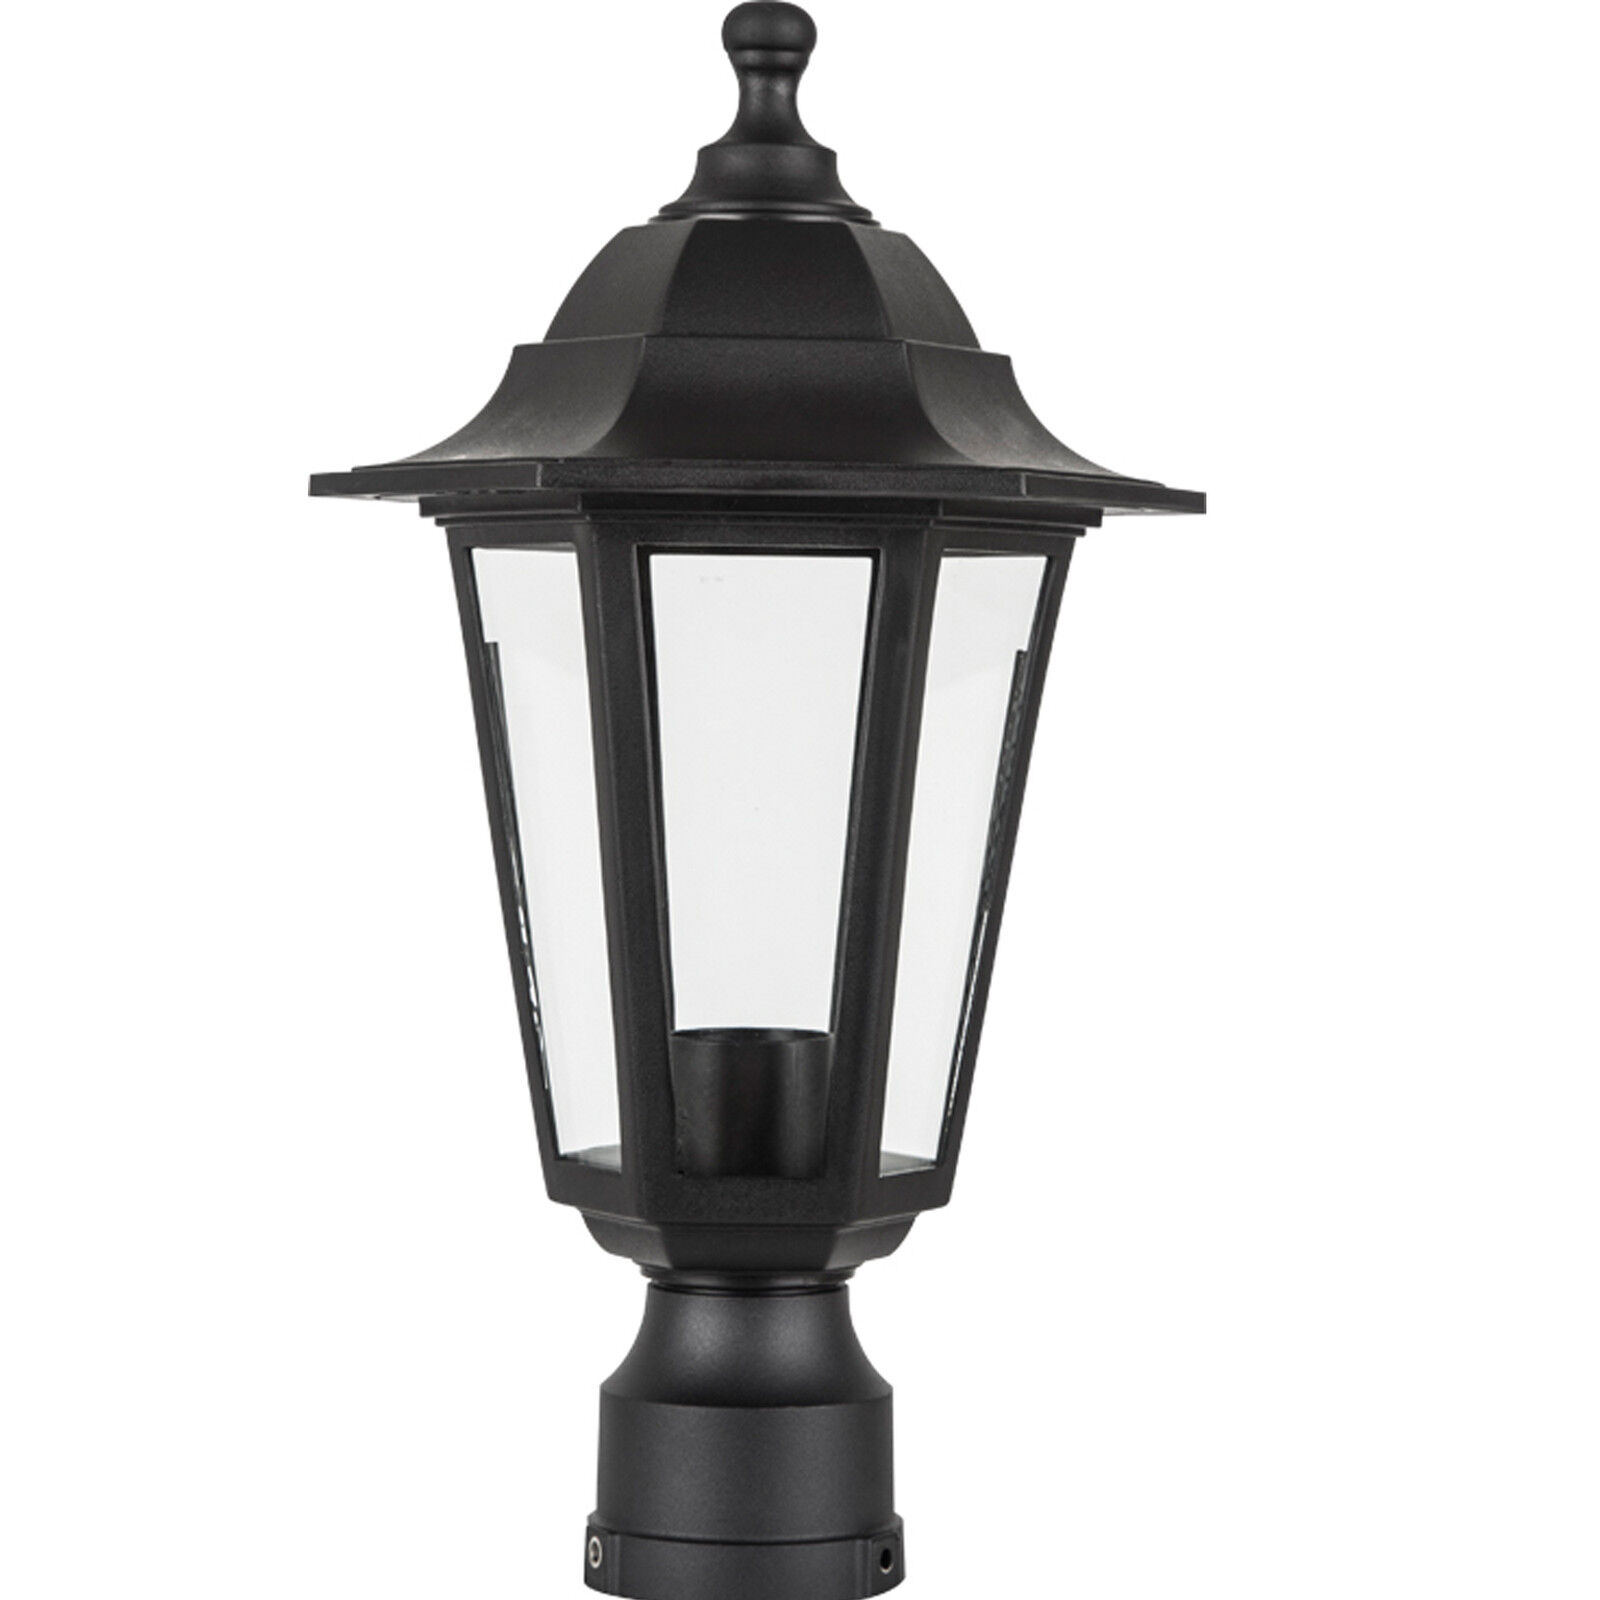 Outdoor Lamp Fixture Post Outside Antique Pole Mount ...